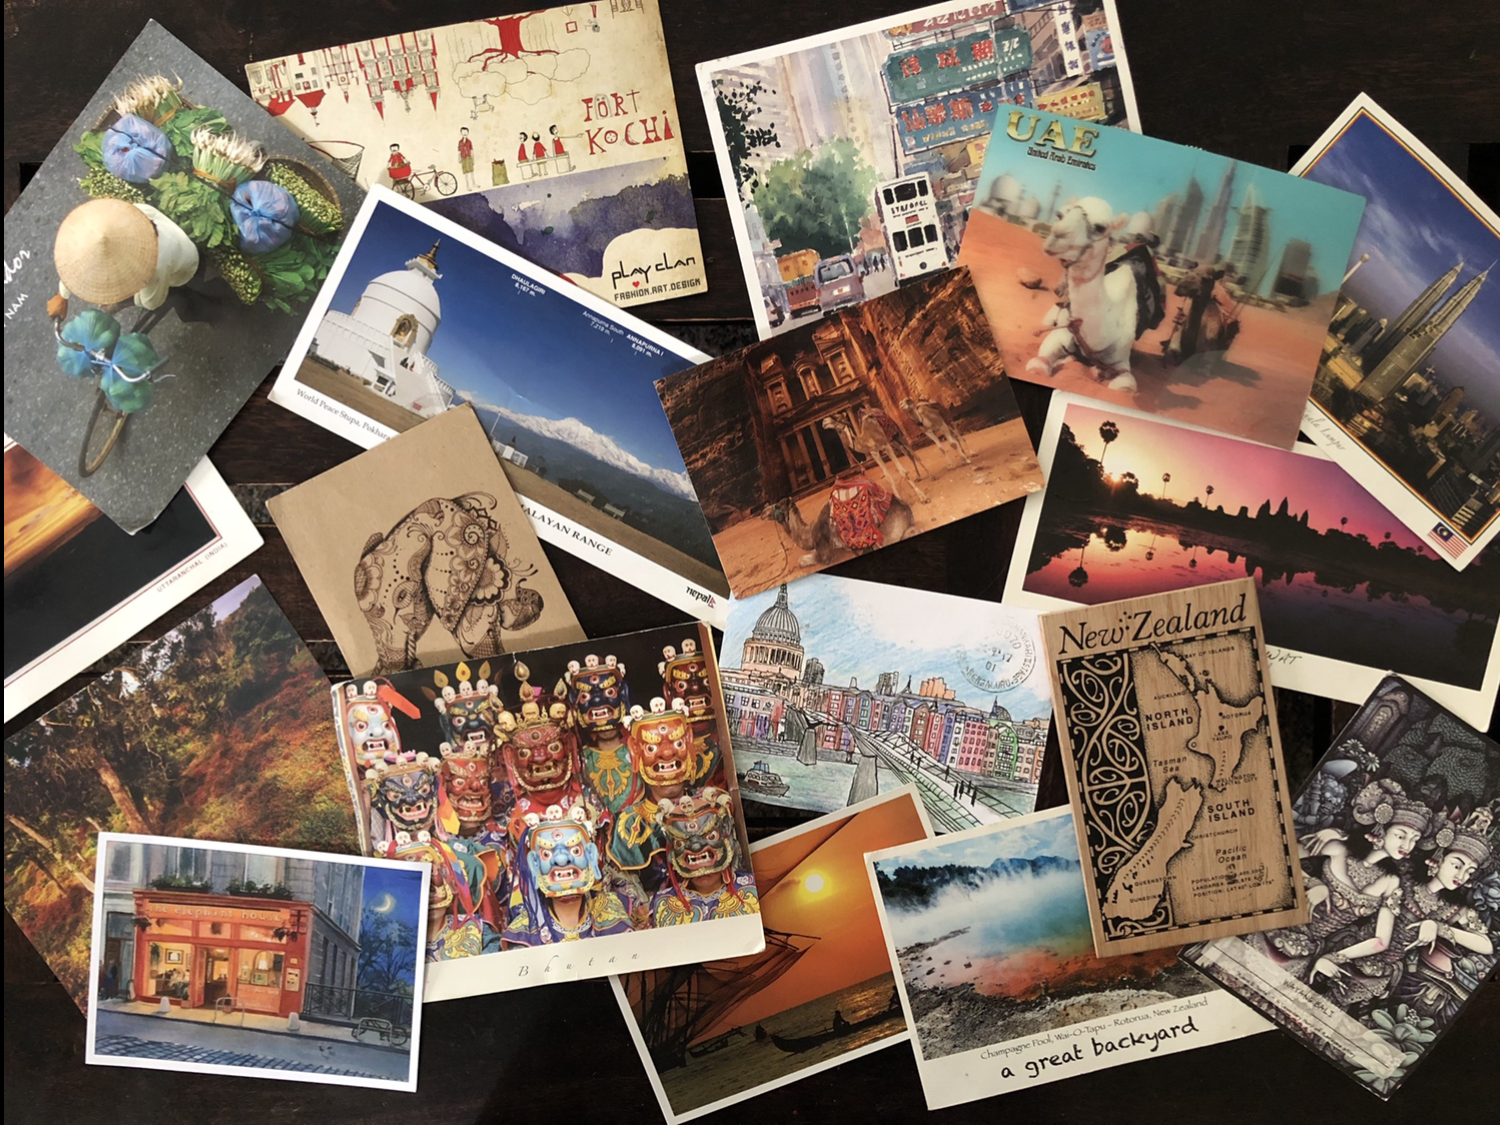 TOP 5 REASONS TO WRITE POSTCARDS WHEN ON TRAVEL